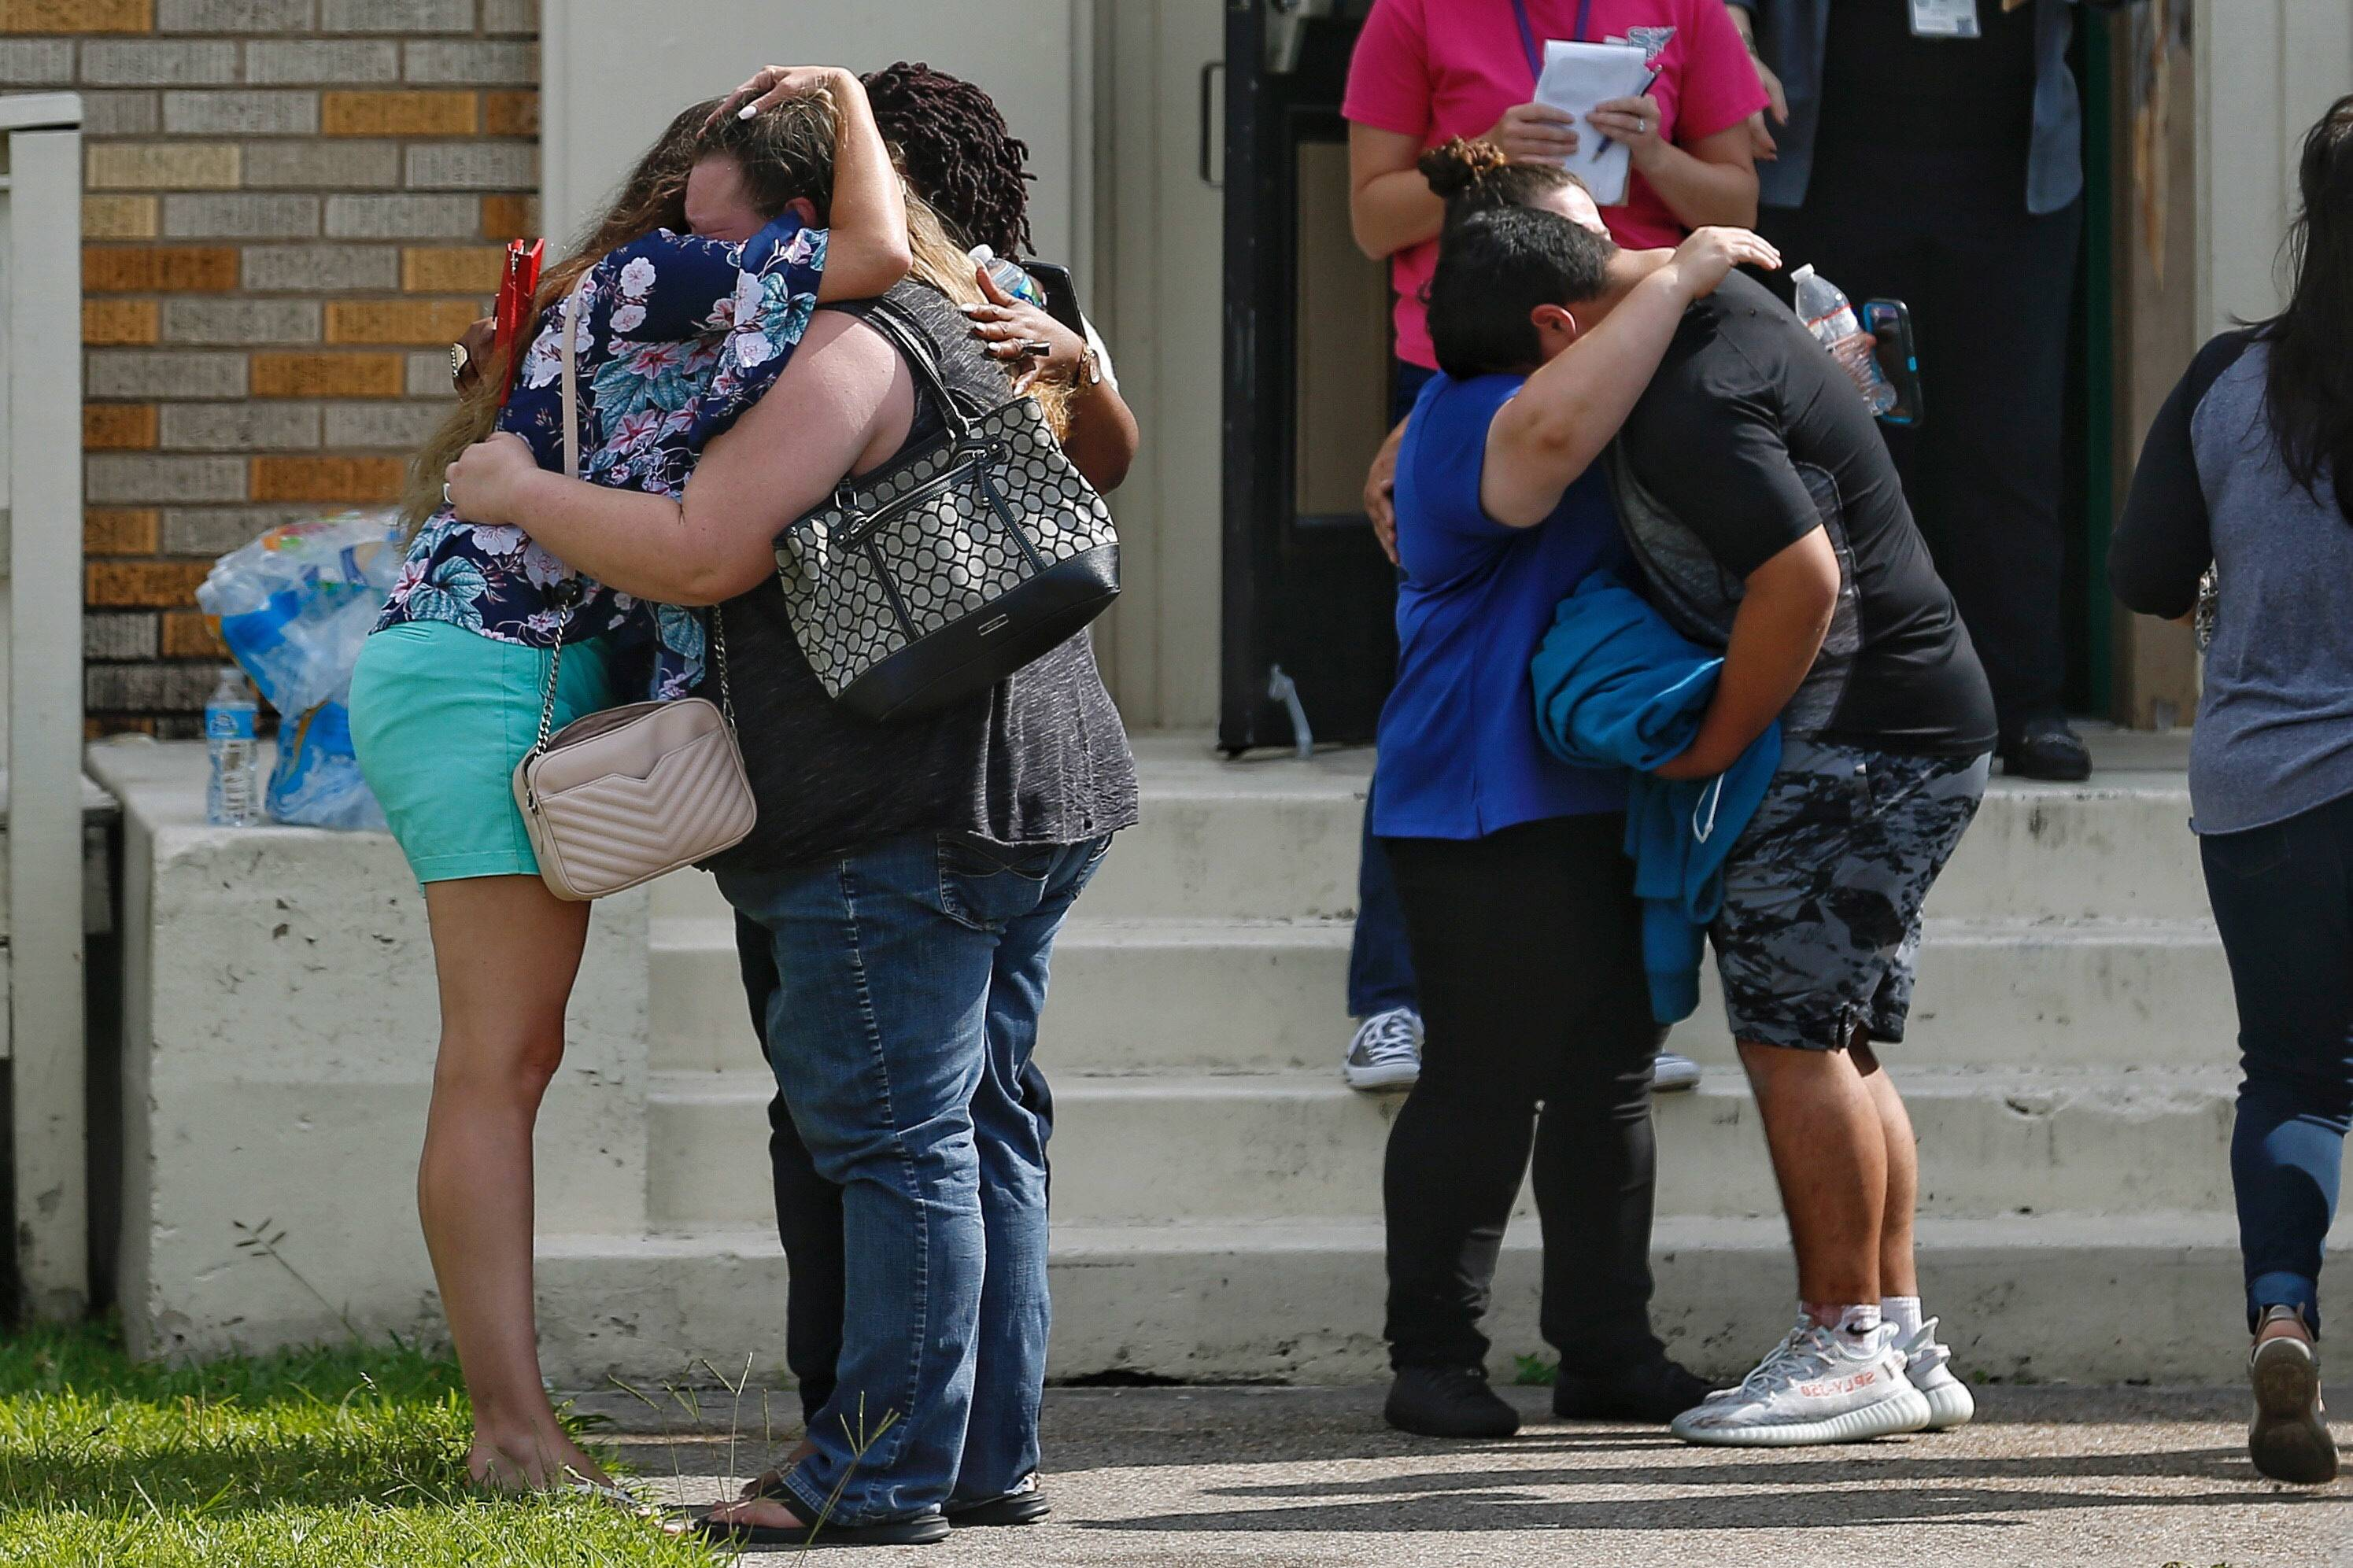 People embrace outside the Alamo Gym where students and parents wait to reunite after a shooting at Santa Fe High School on May 18 in Santa Fe, Texas.